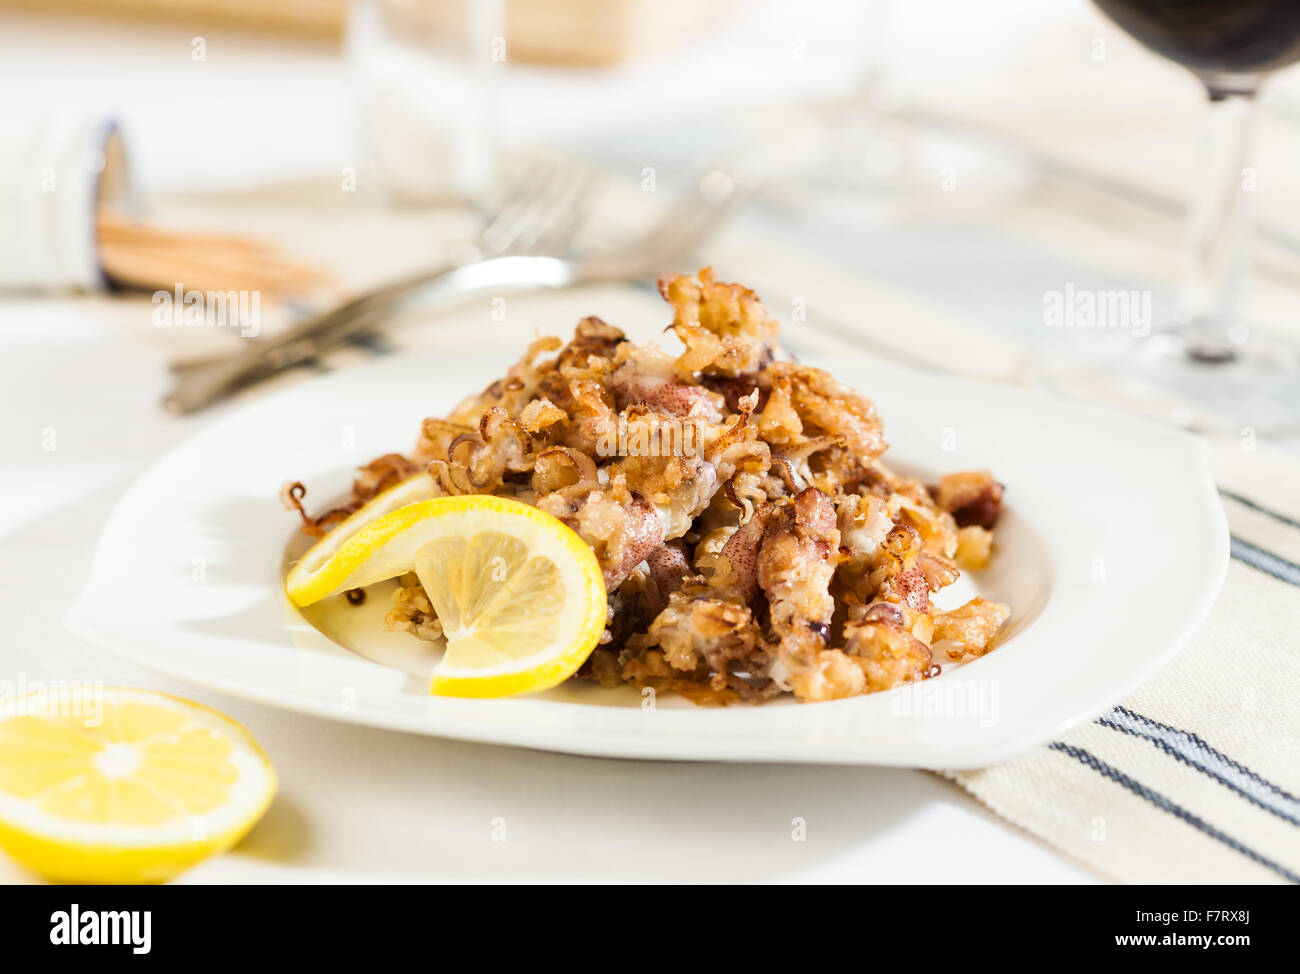 Fried squid typical Spanish tapa - Stock Image